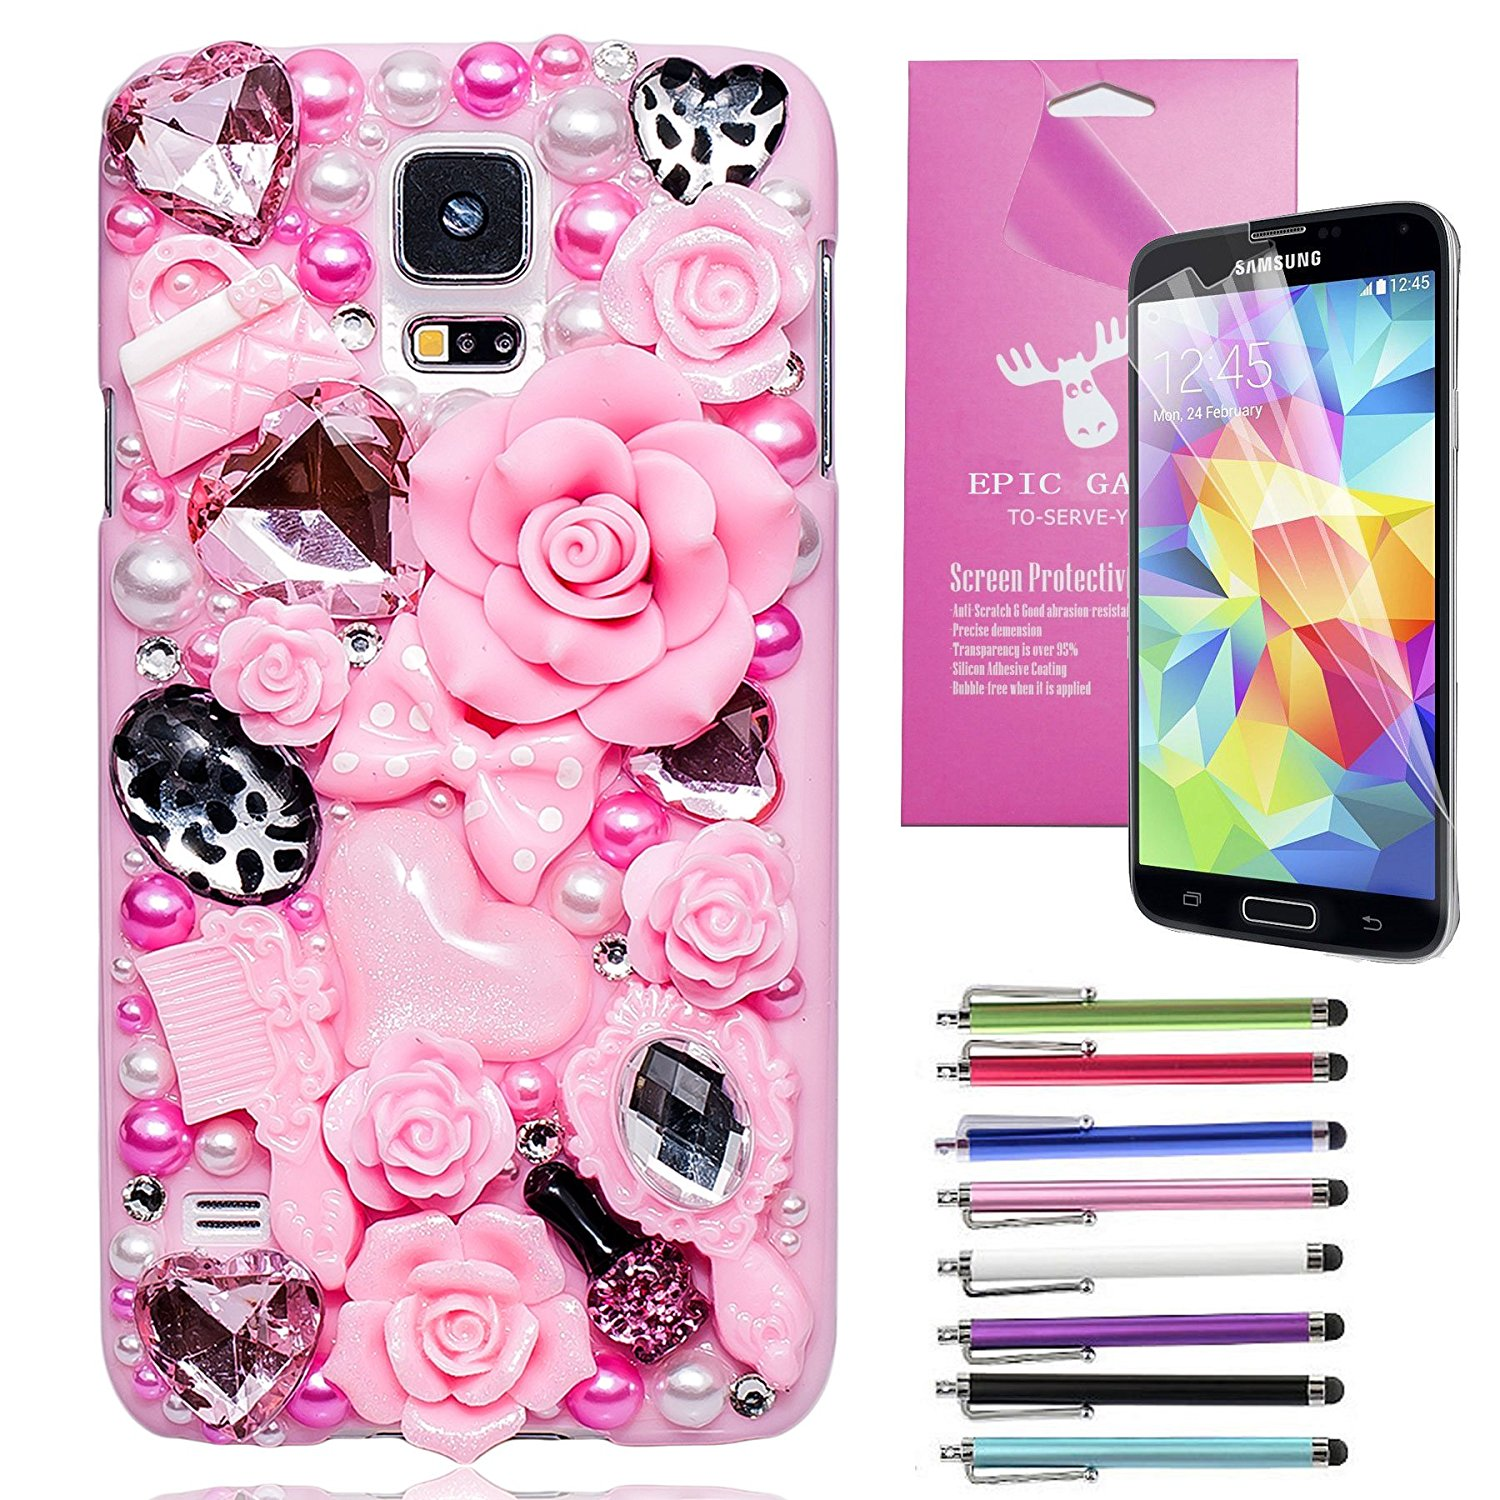 EpicGadget(TM) Samsung Galaxy S5 Handmade Luxury Crystal Bling Bling Fairy Tale Case For Samsung Galaxy S5 i9600 + S5 i9600 Screen Protector + 1 Stylus Pen (Random Color) (US Seller!!) (Pink Flower Fairy Tale Case)